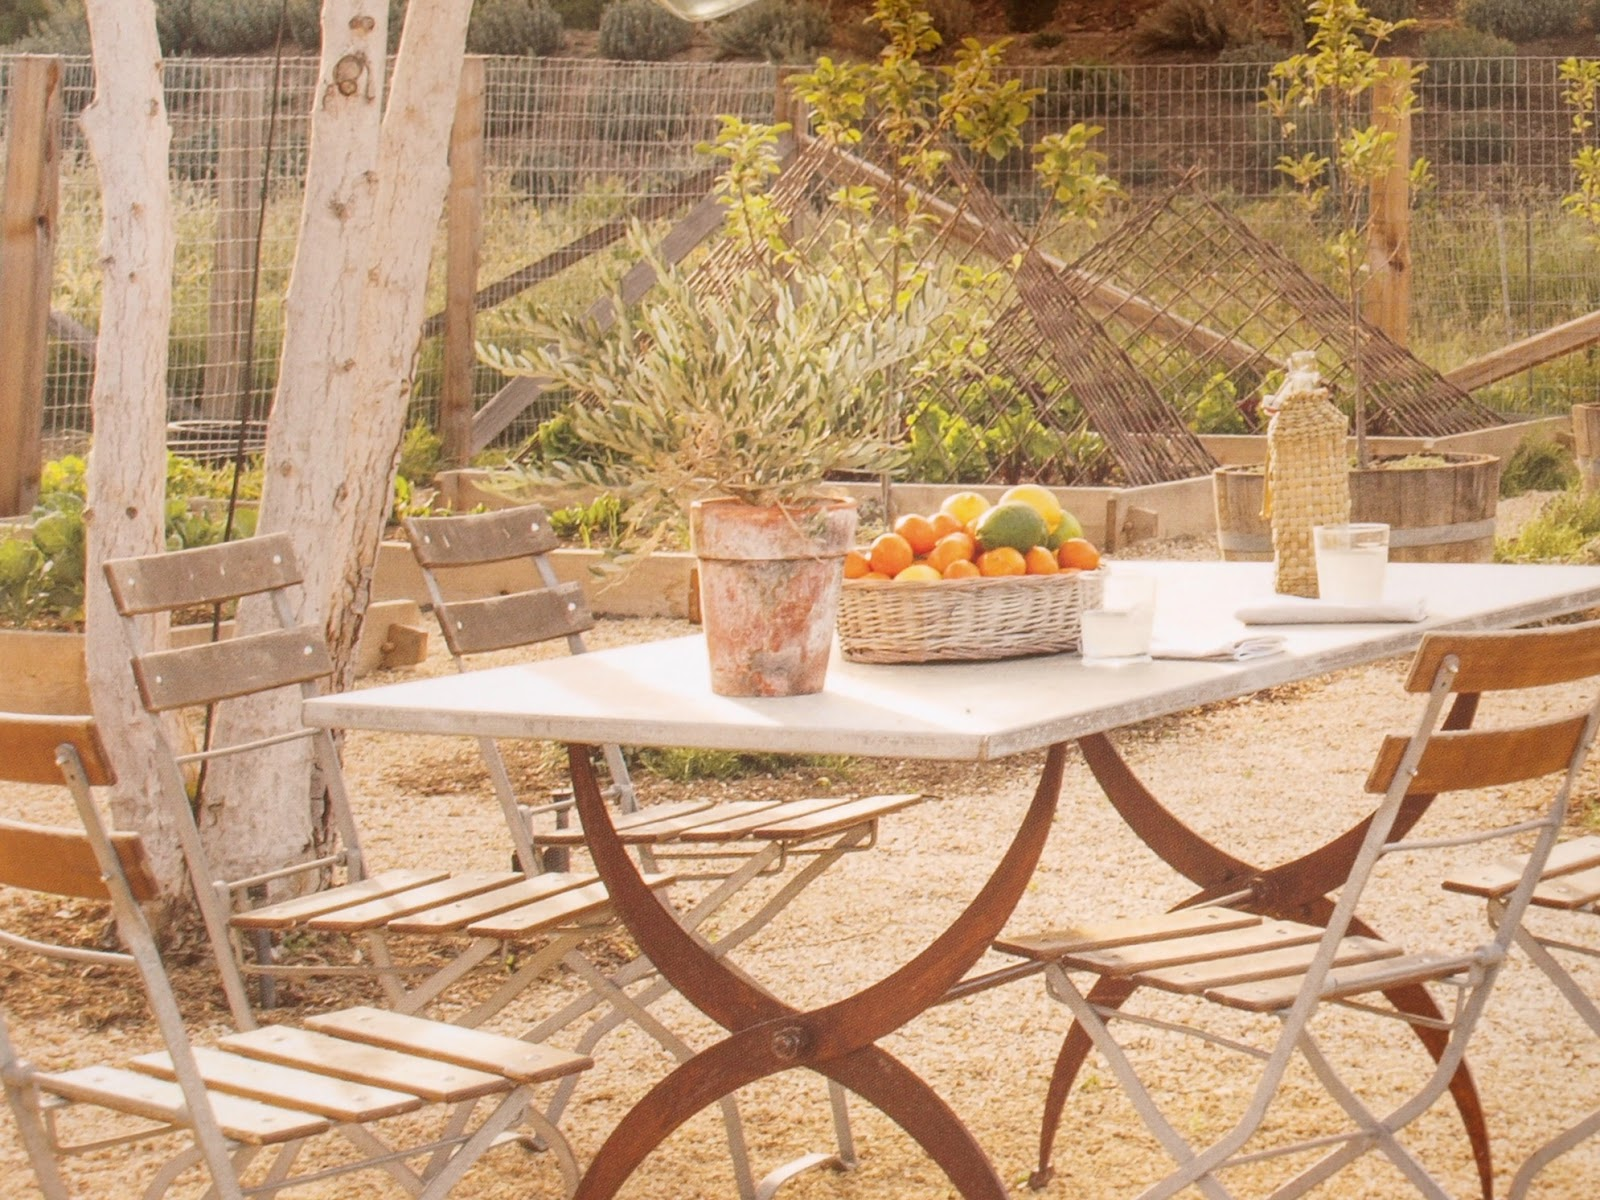 Charming bistro seating outside Patina Farm by Giannetti Home in Ojai, California #patinafarm